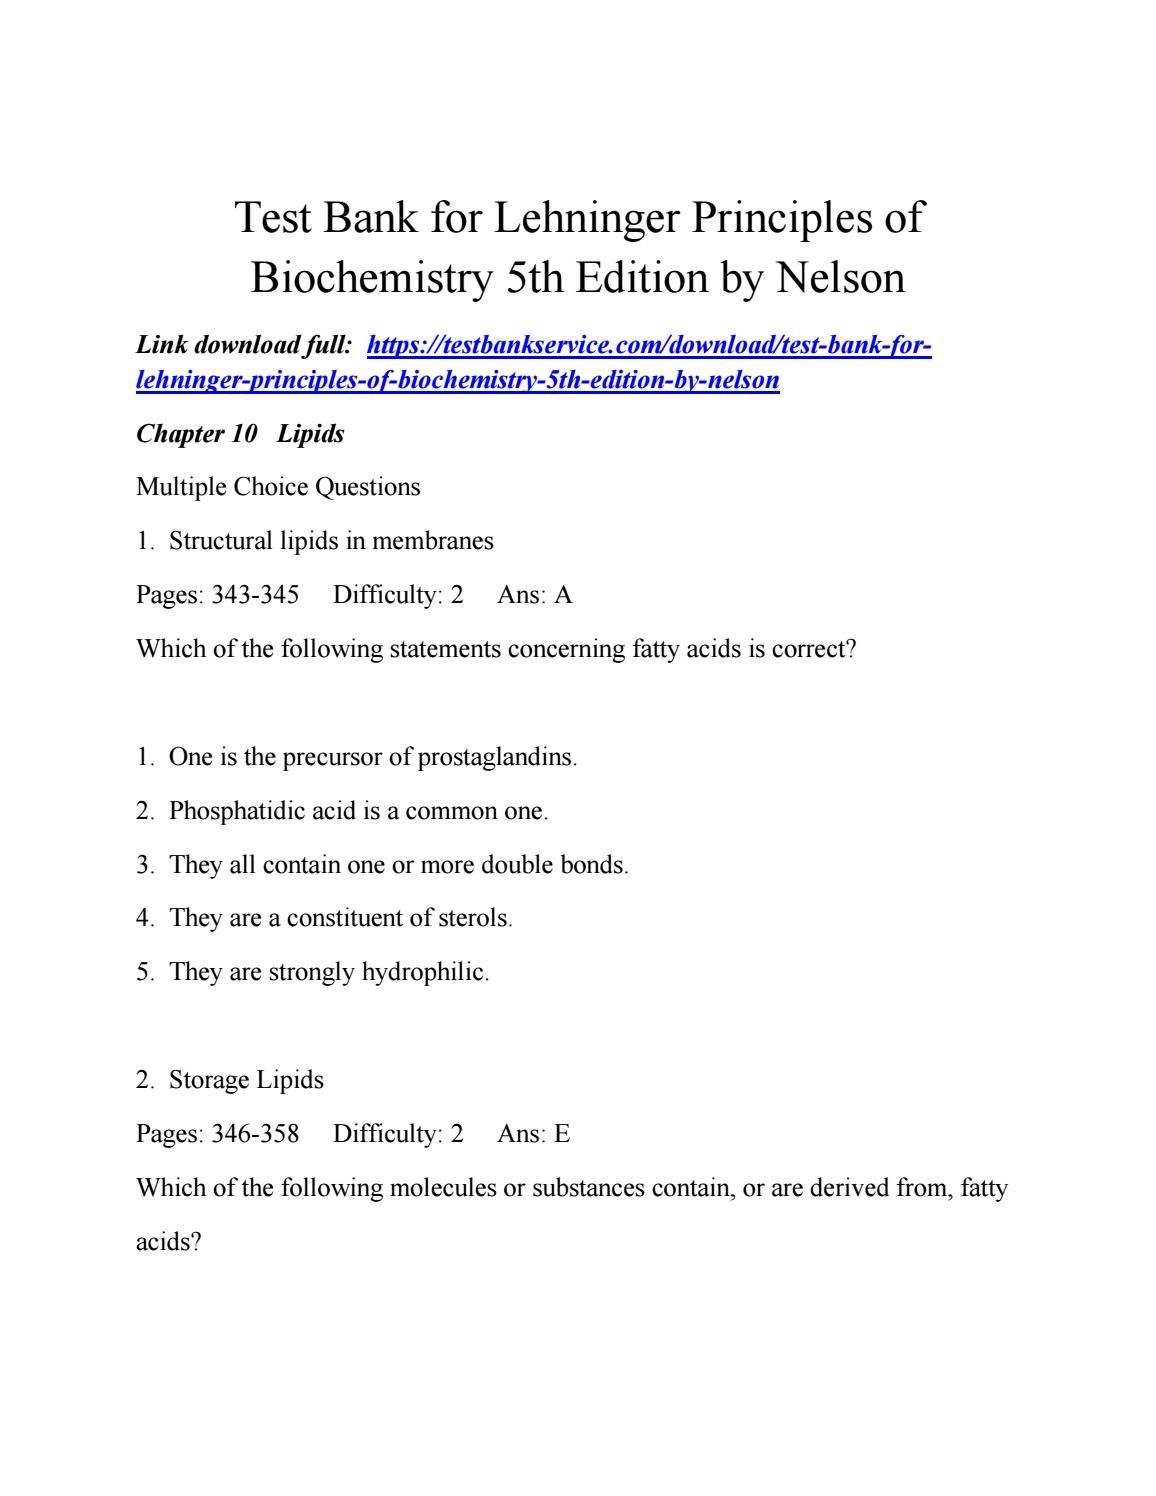 Test bank for lehninger principles of biochemistry 5th edition by nelson  Bioquímica